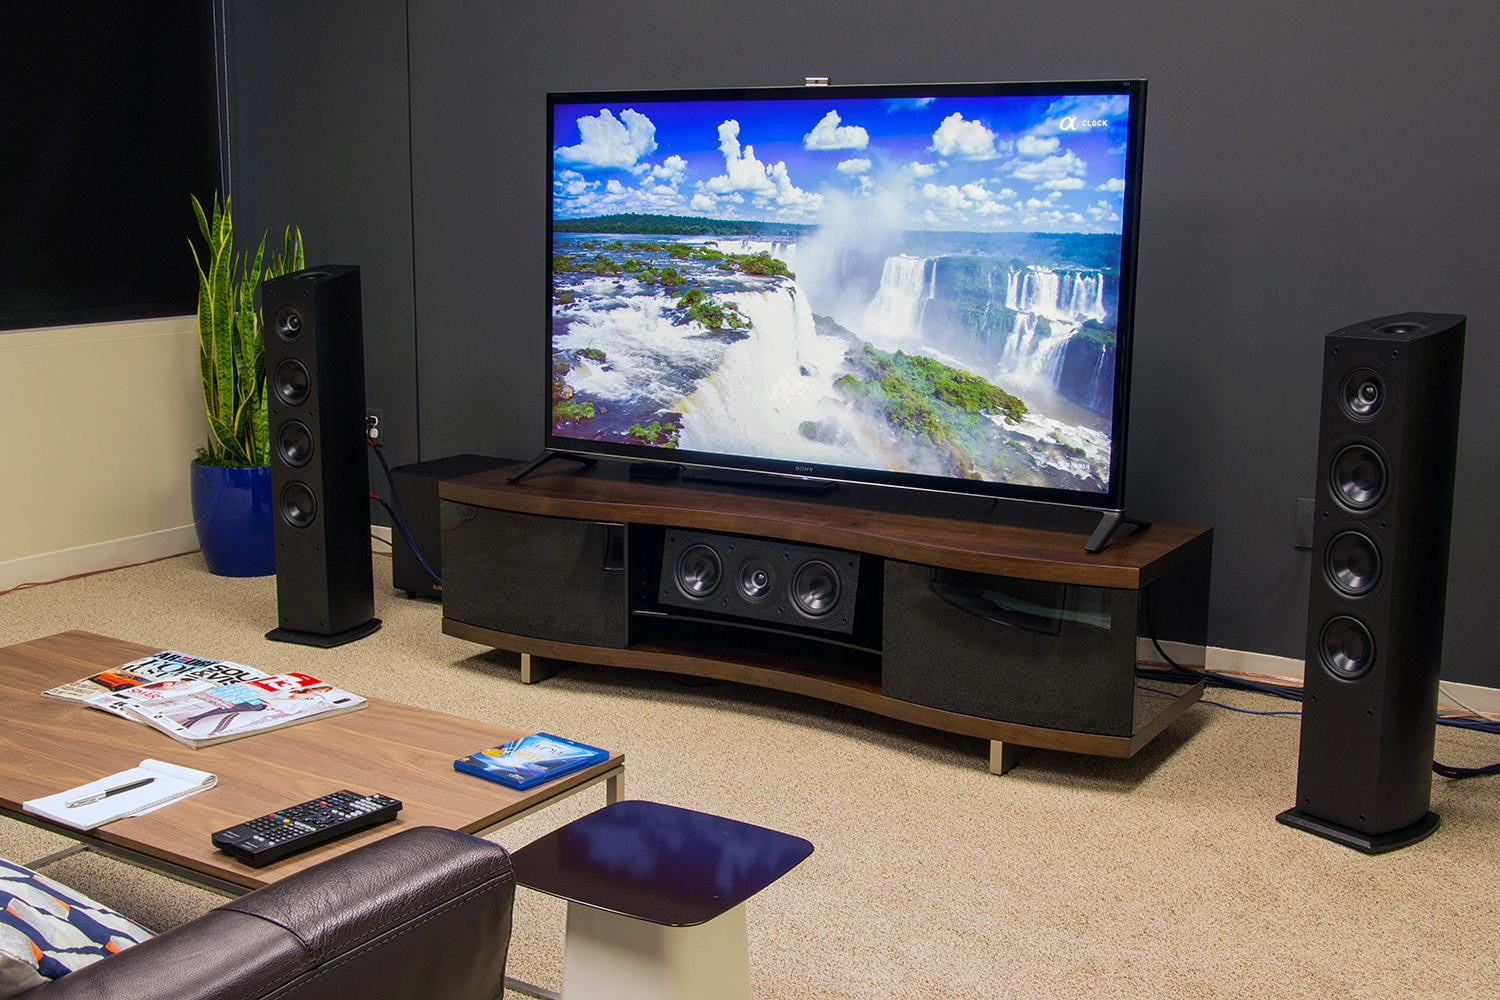 65inch Tv Dimensions Sony Xbr 65x950b Review Digital Trends